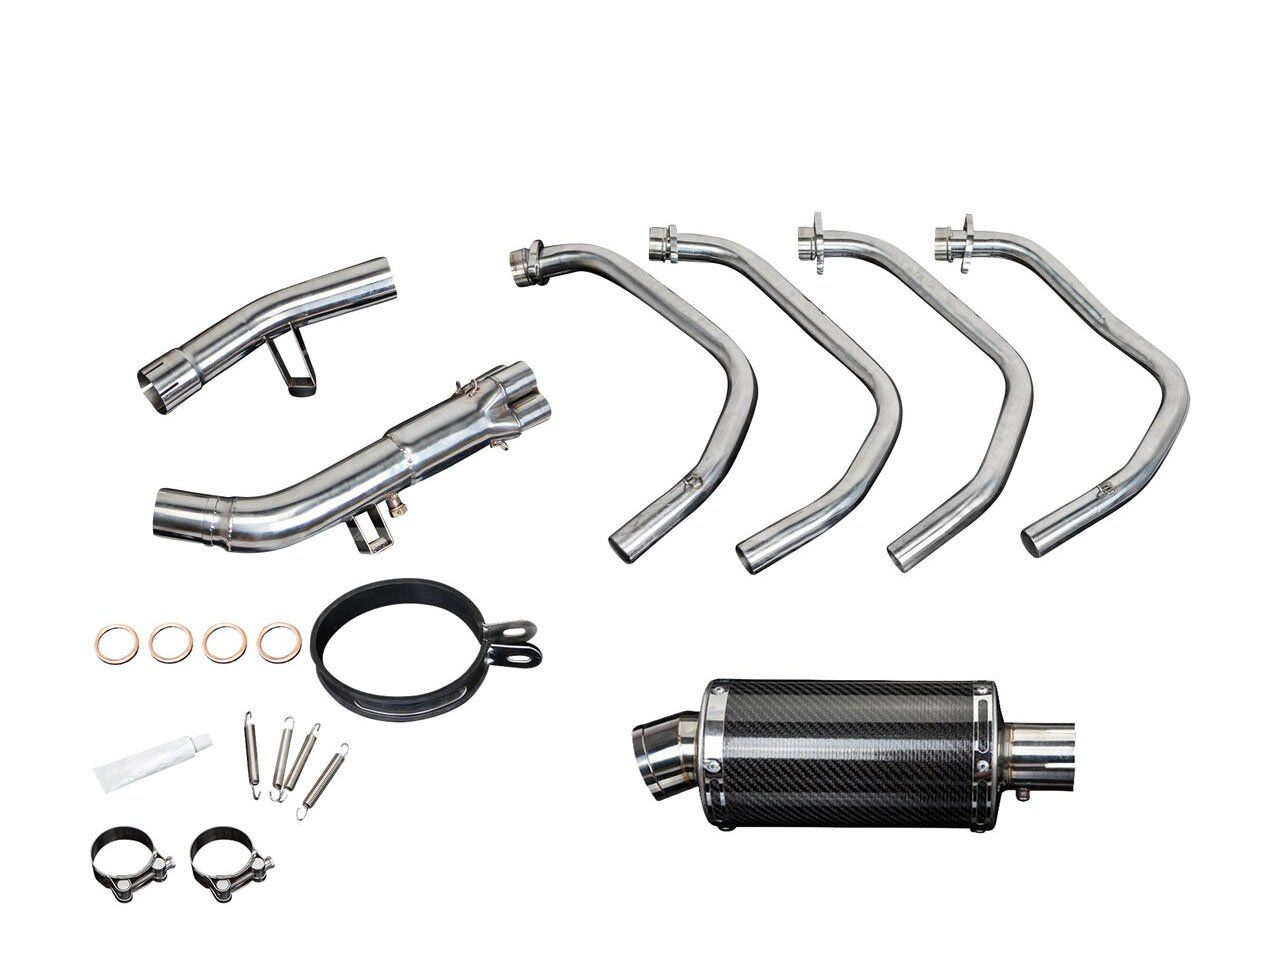 DELKEVIC Suzuki GSF1250 Bandit (07/09, 16) Full Exhaust System with DS70 9